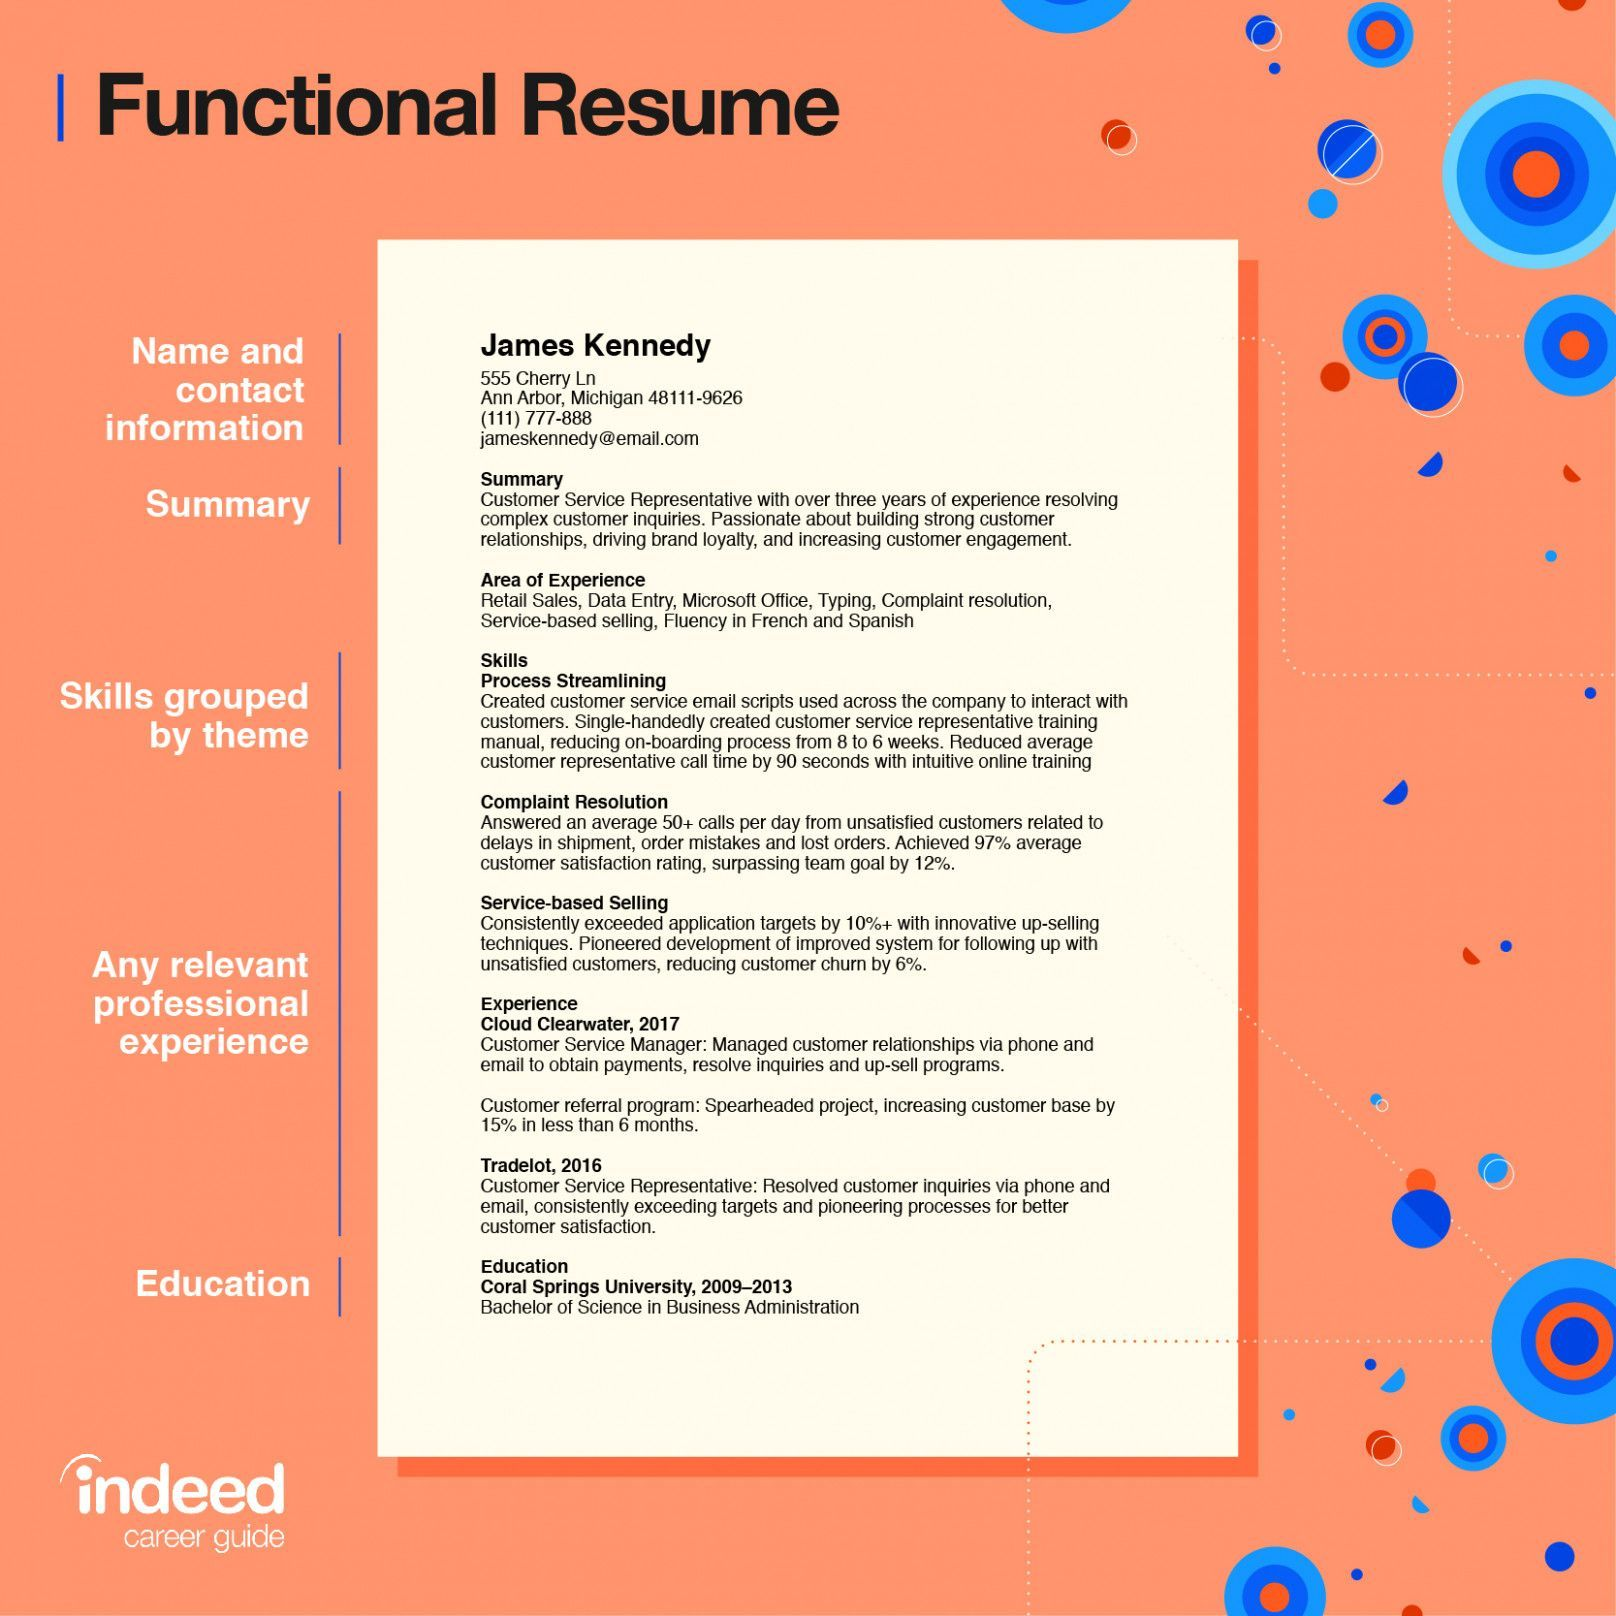 15 How To Make A Resume For Your First Job Interview Interview Job Resume In 2020 Functional Resume Resume Skills How To Make Resume